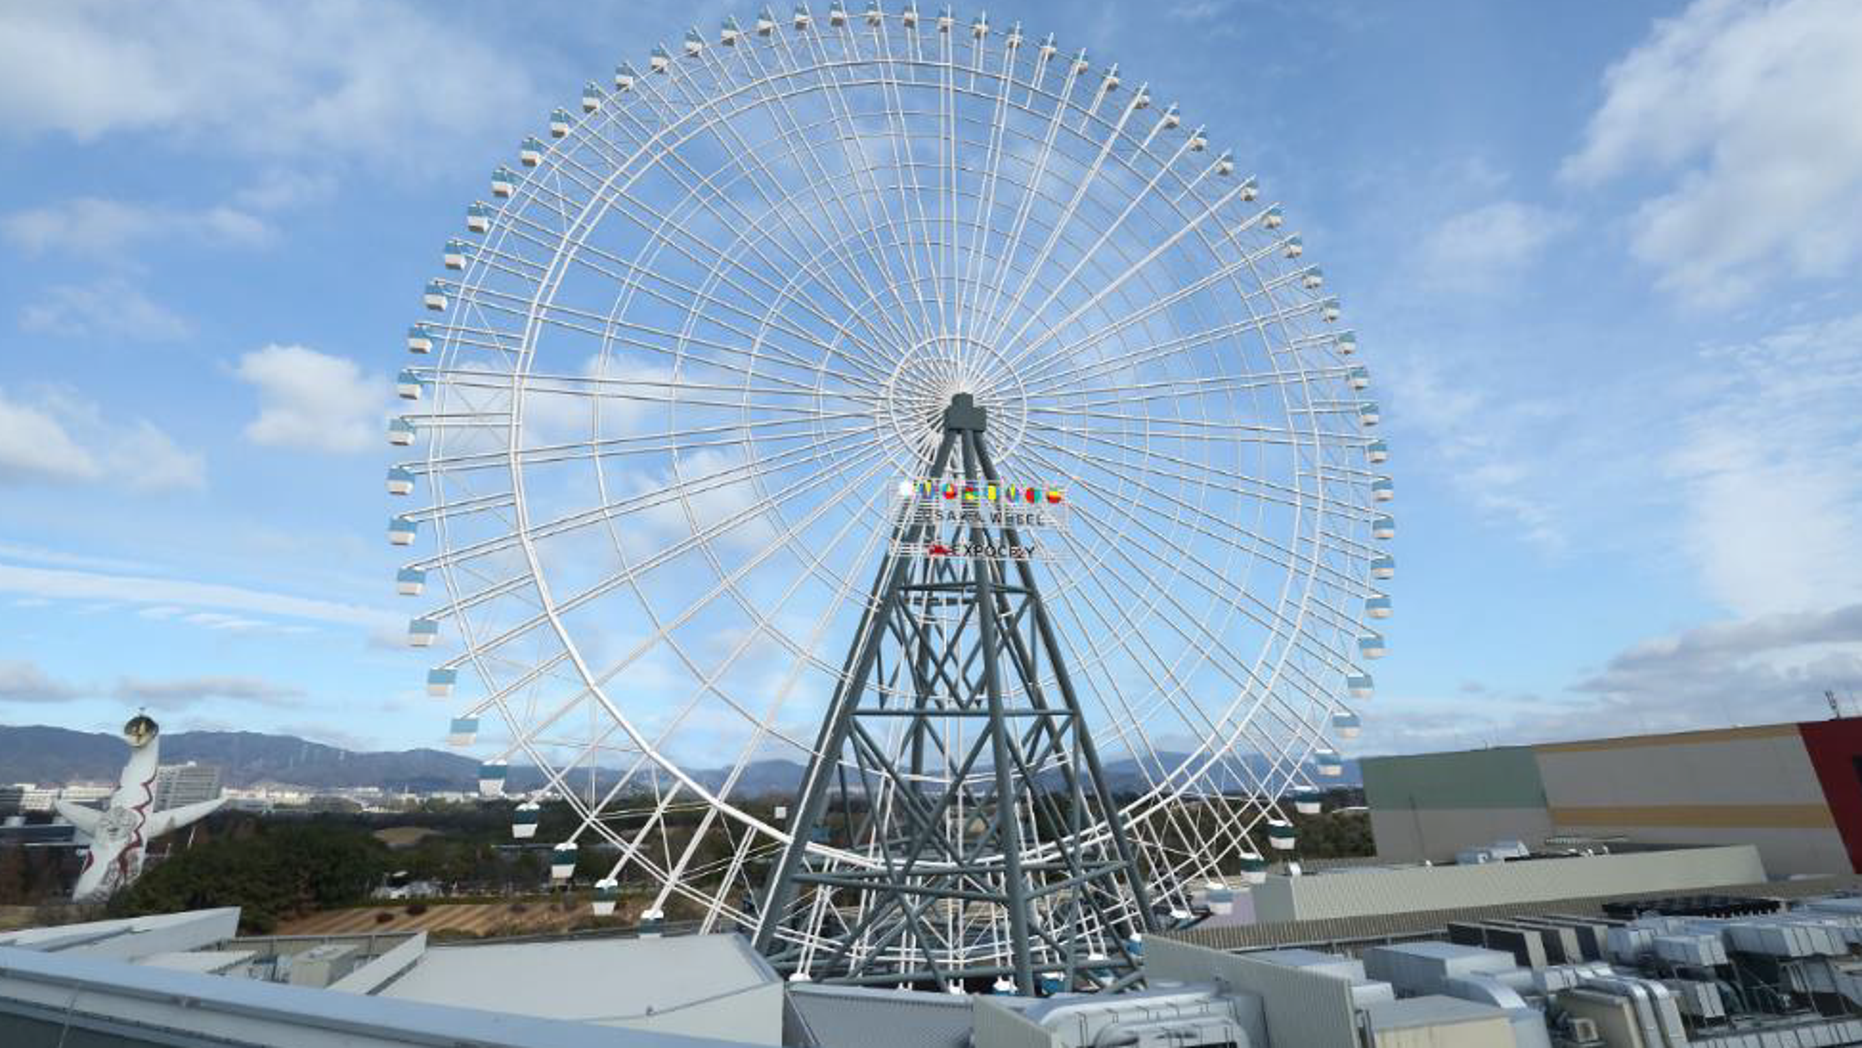 Japan's tallest Ferris wheel is set to open this summer.